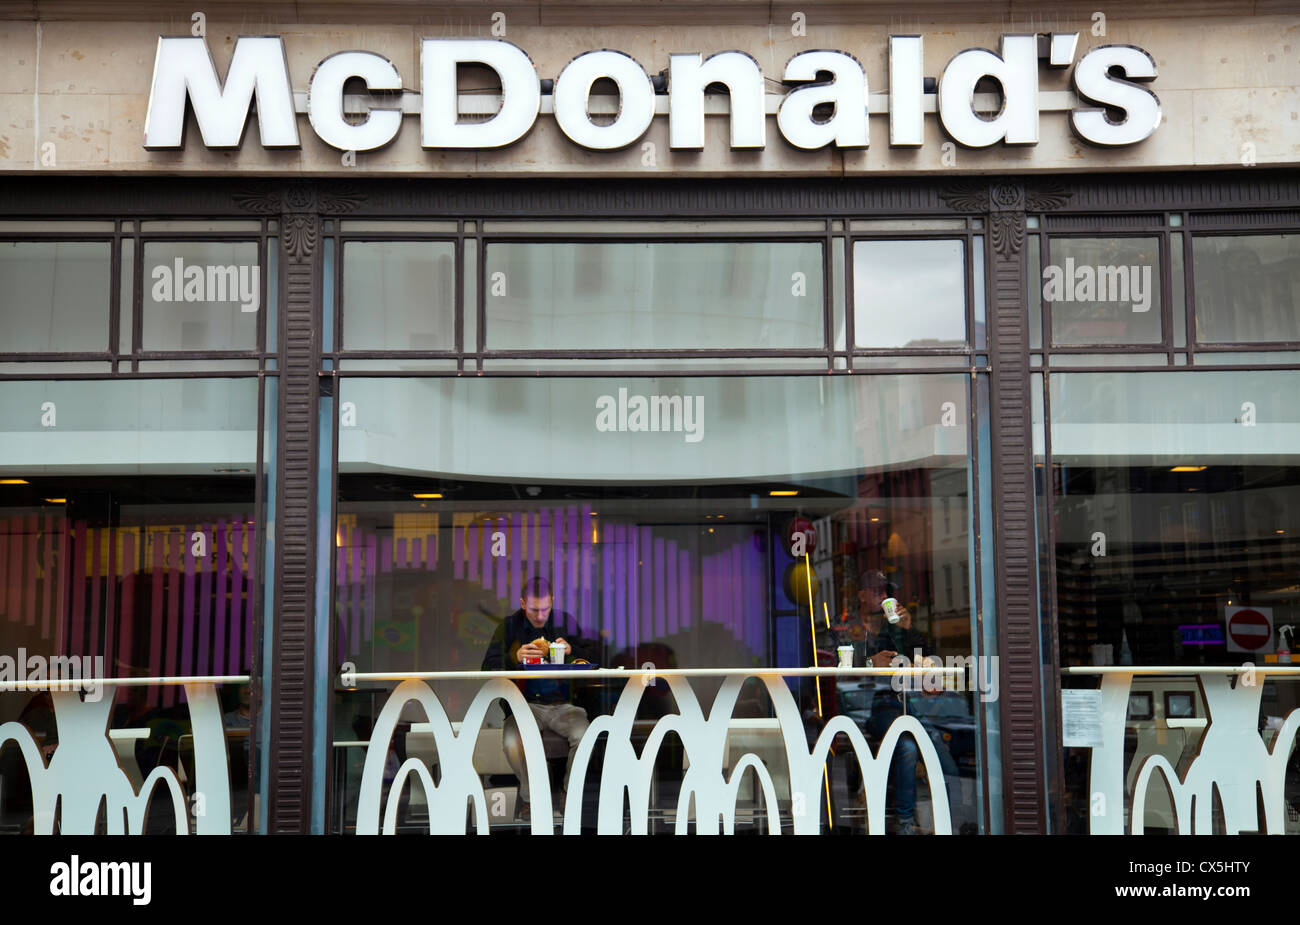 McDonalds in Leicester Square - London - UK - Stock Image